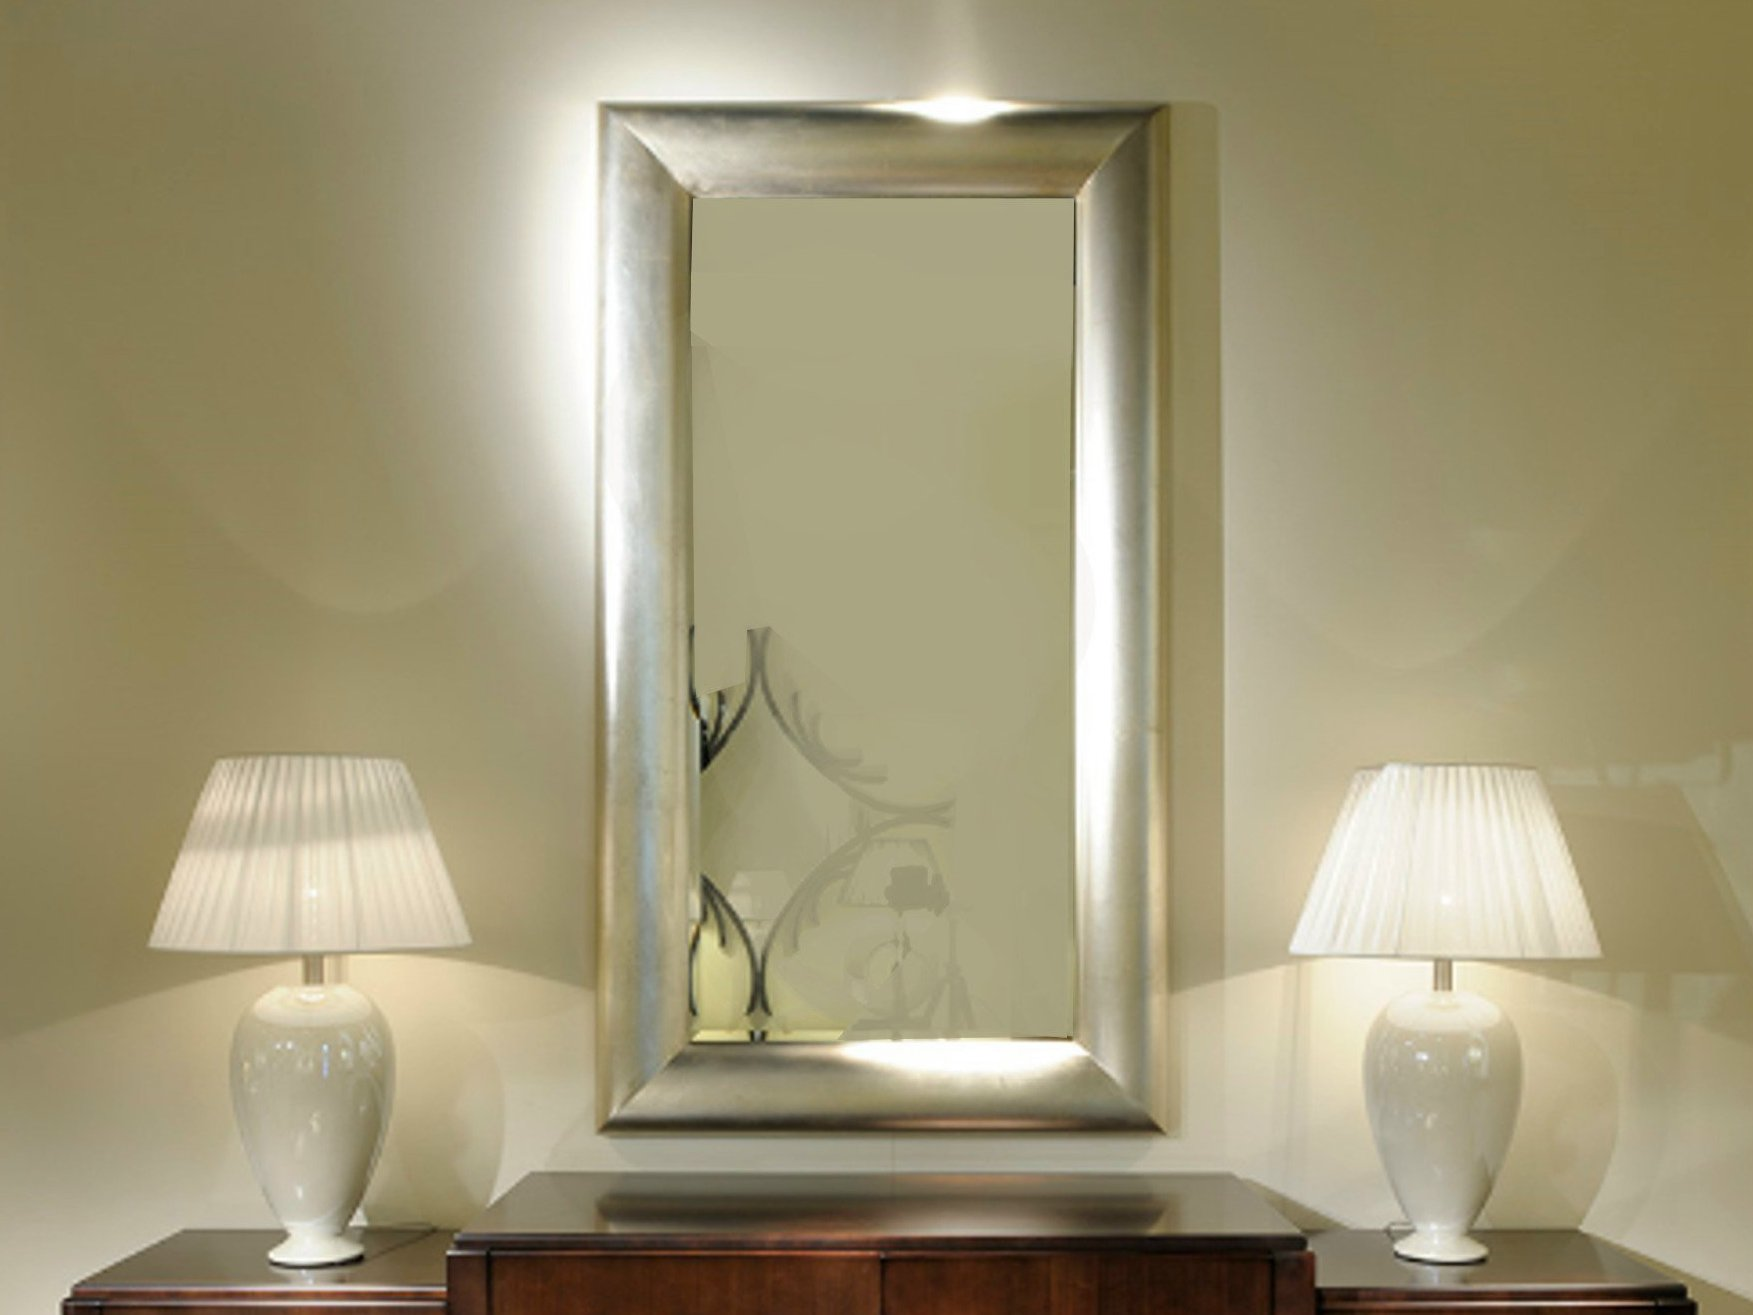 Art deco milano miroir rectangulaire by transition by casali - Deco avec miroir mural ...